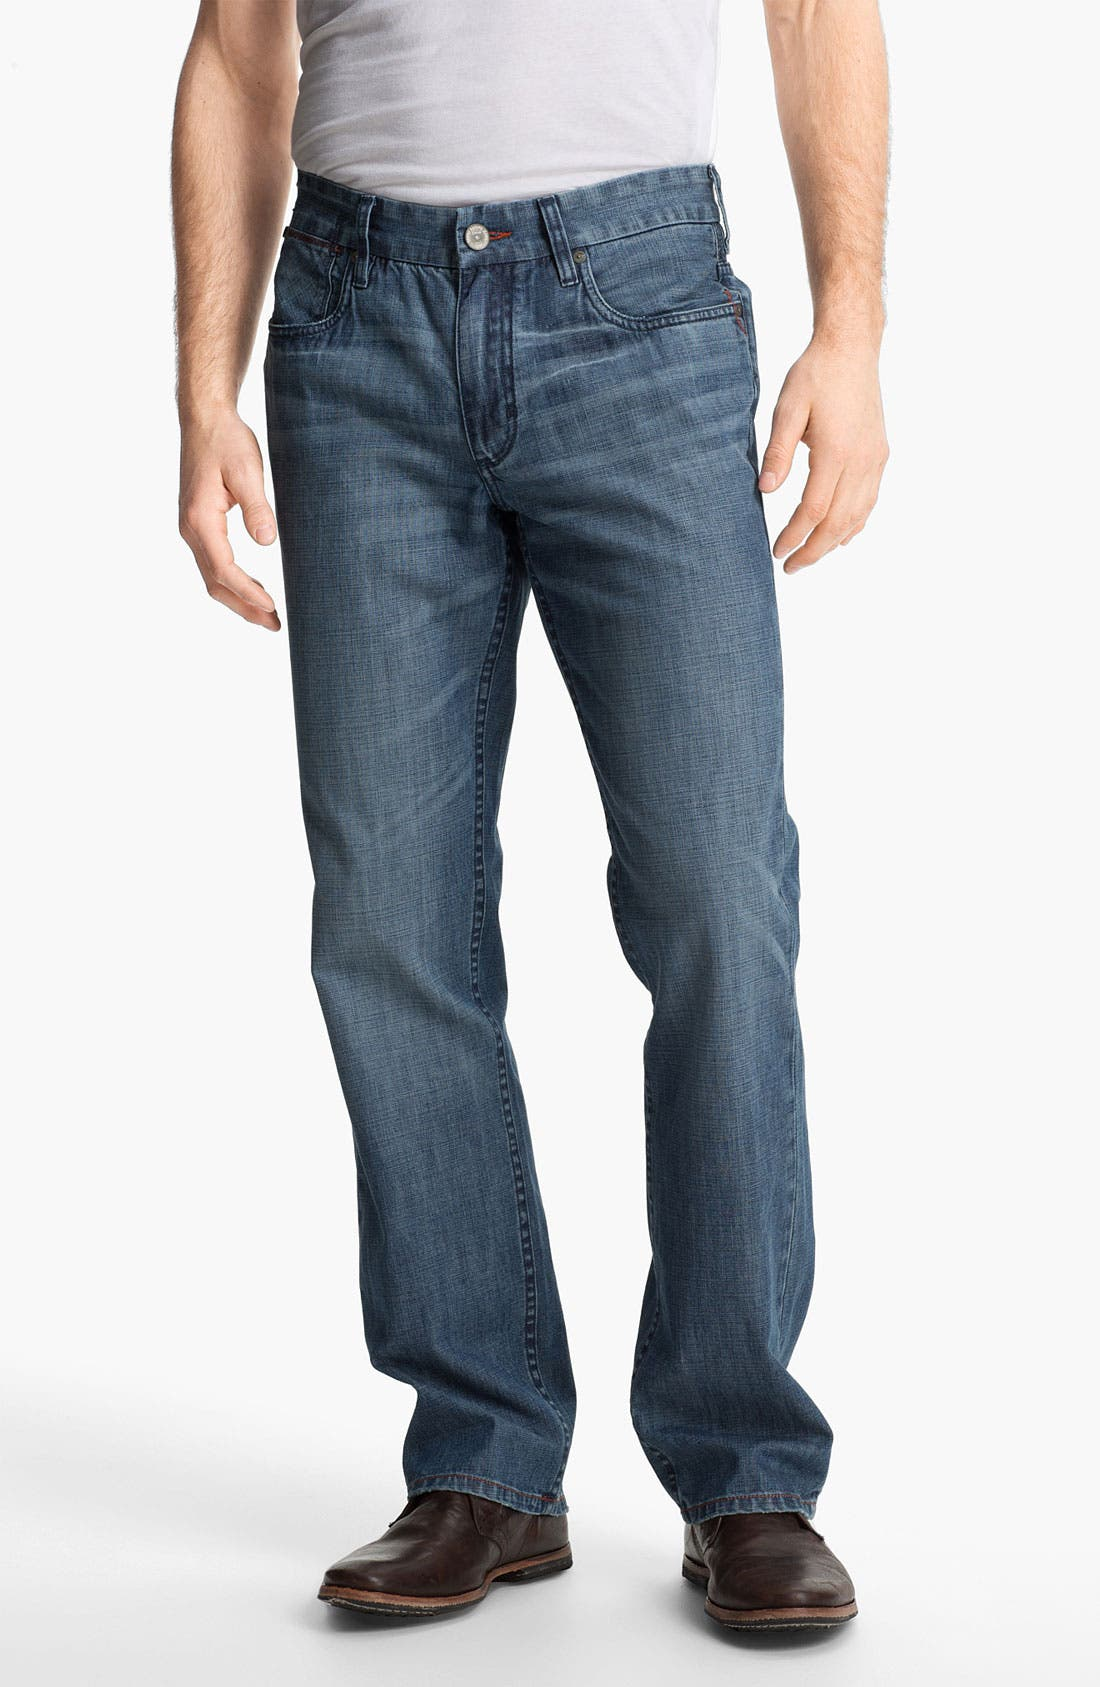 Alternate Image 1 Selected - Tommy Bahama Denim 'Cruz' Authentic Fit Jeans (Medium)